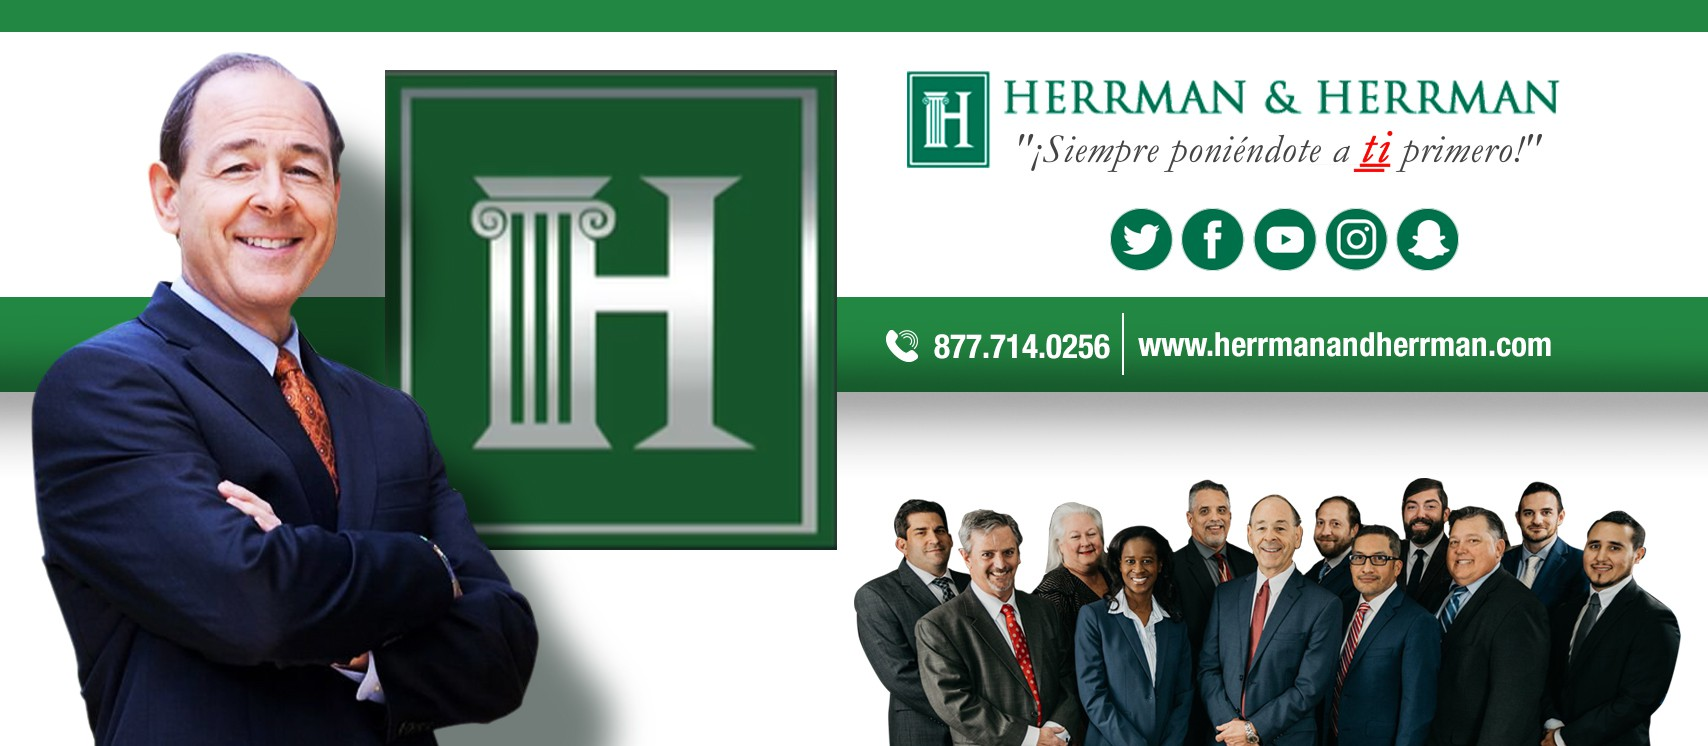 Herrman and Herrman Spanish Facebook Cover picture